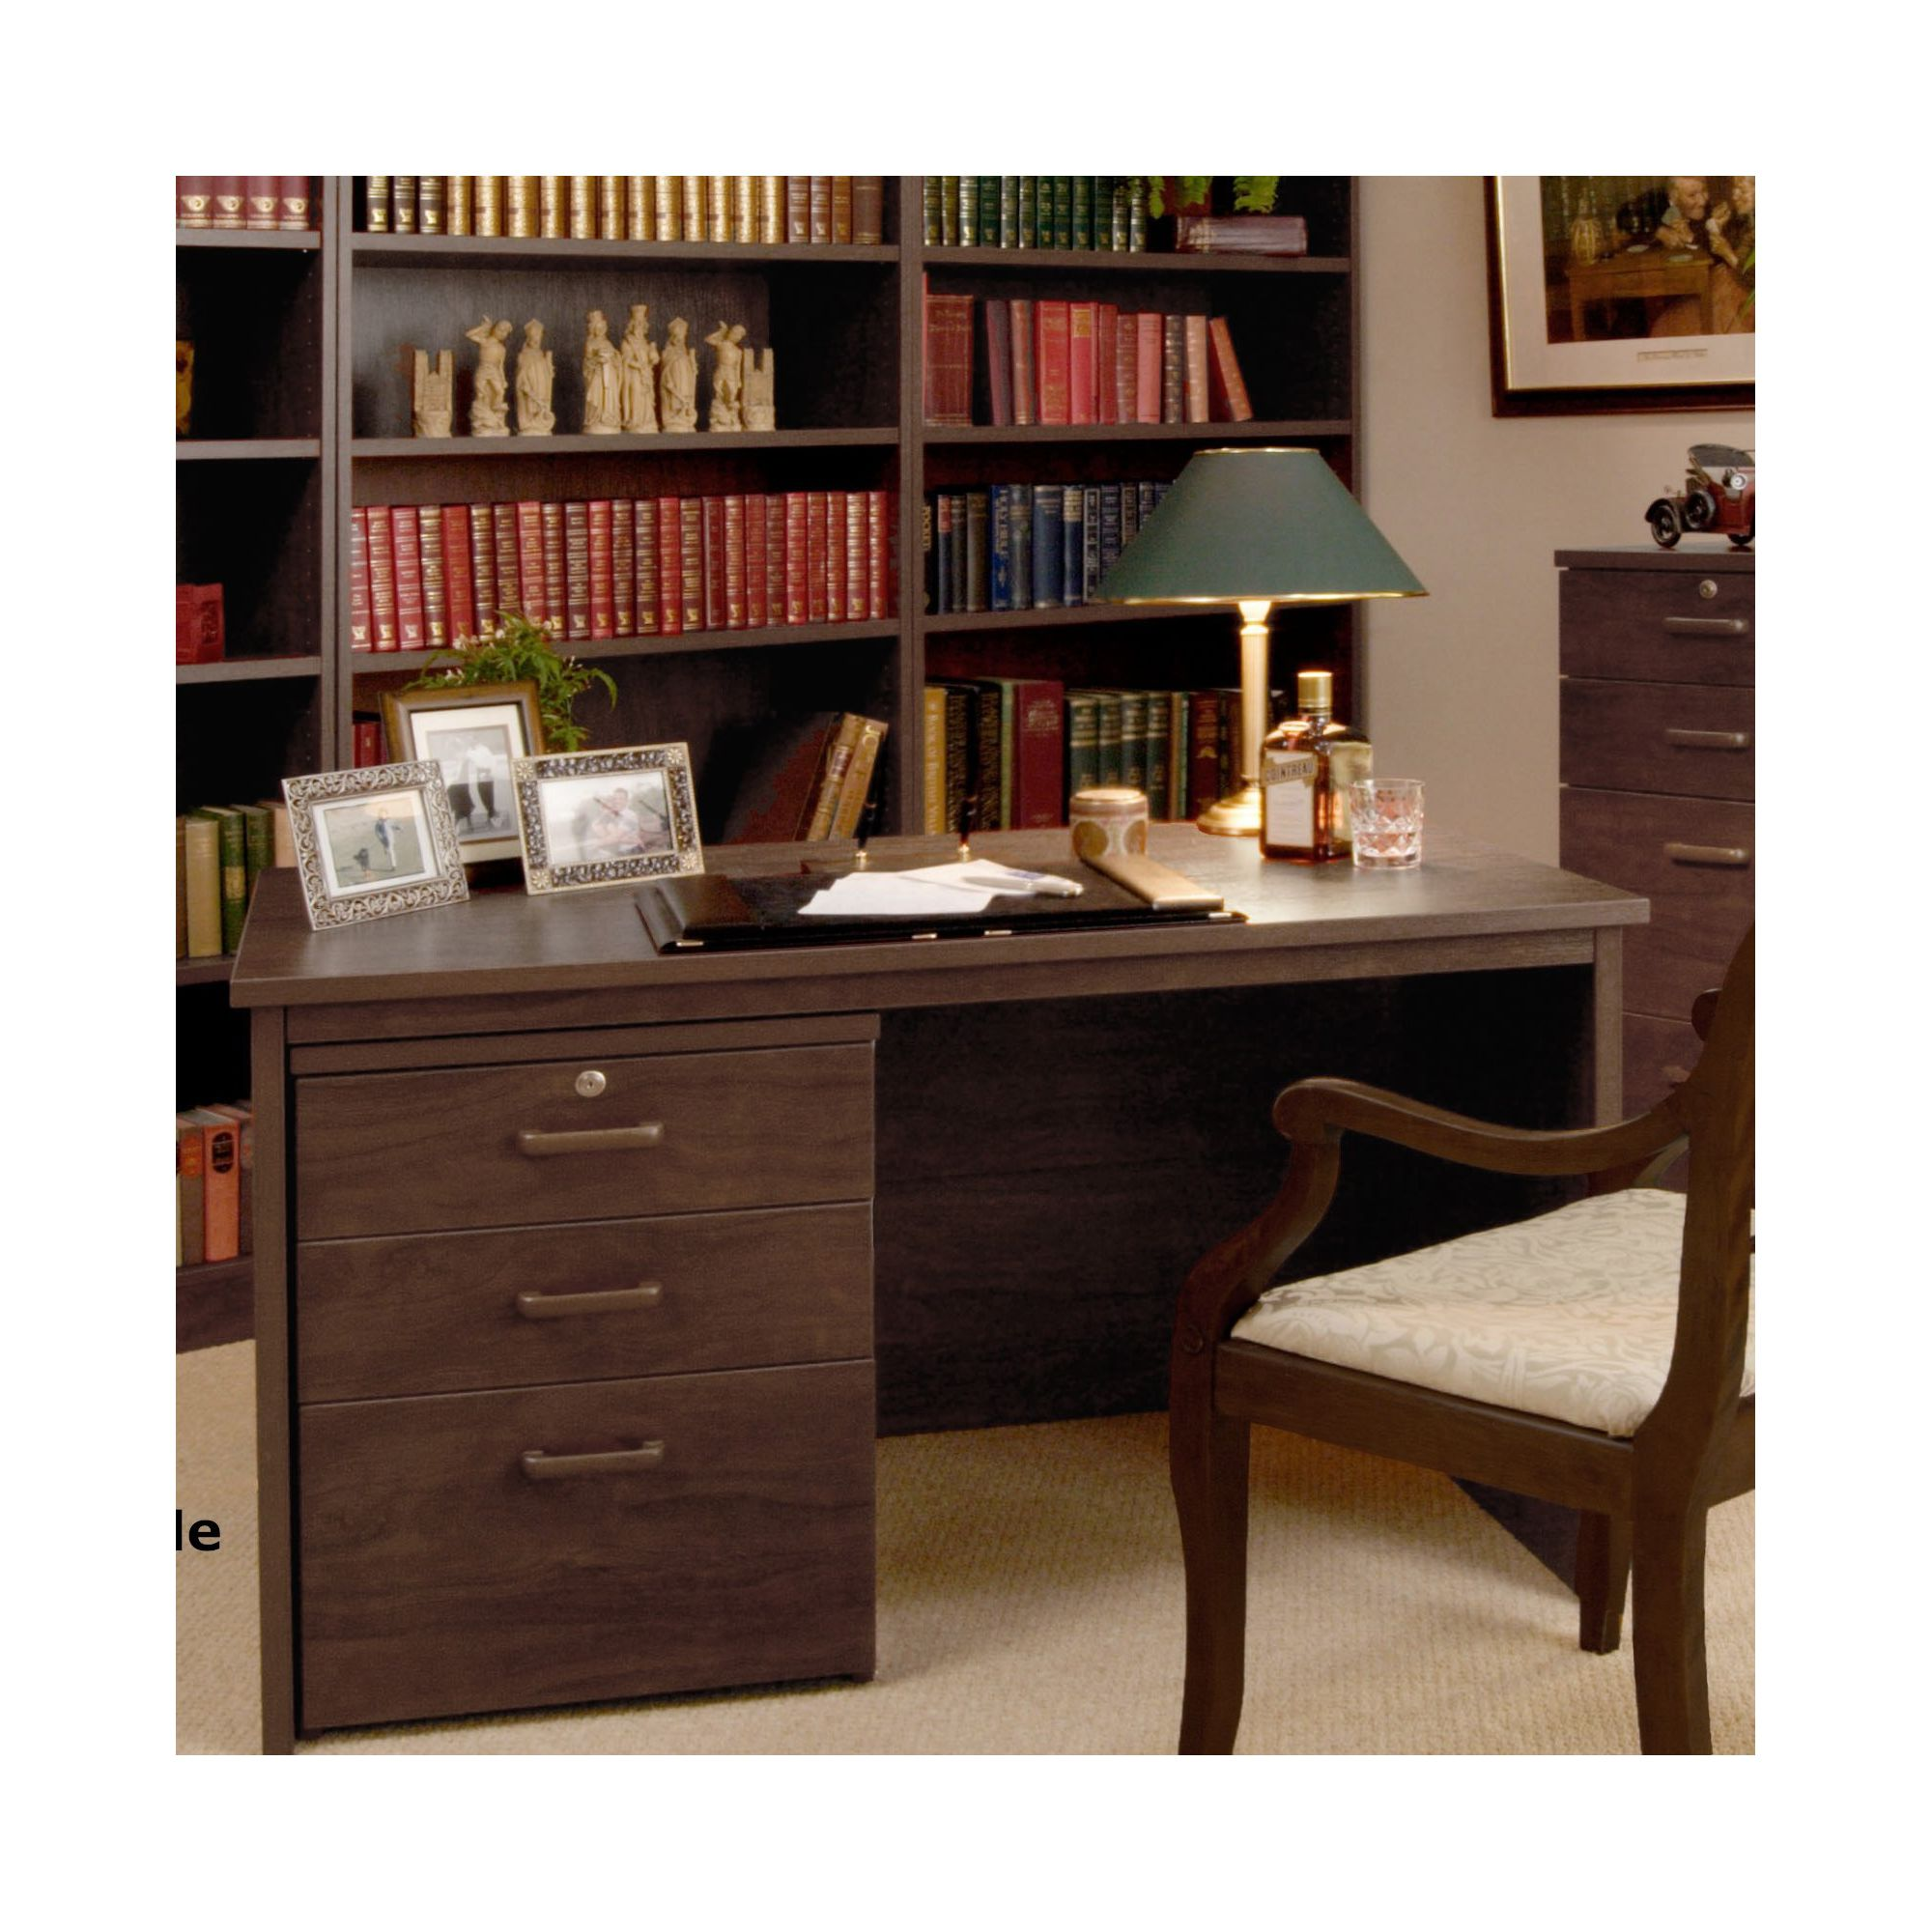 UK Office Furniture Affordable Office Supplies Office Furniture Rec